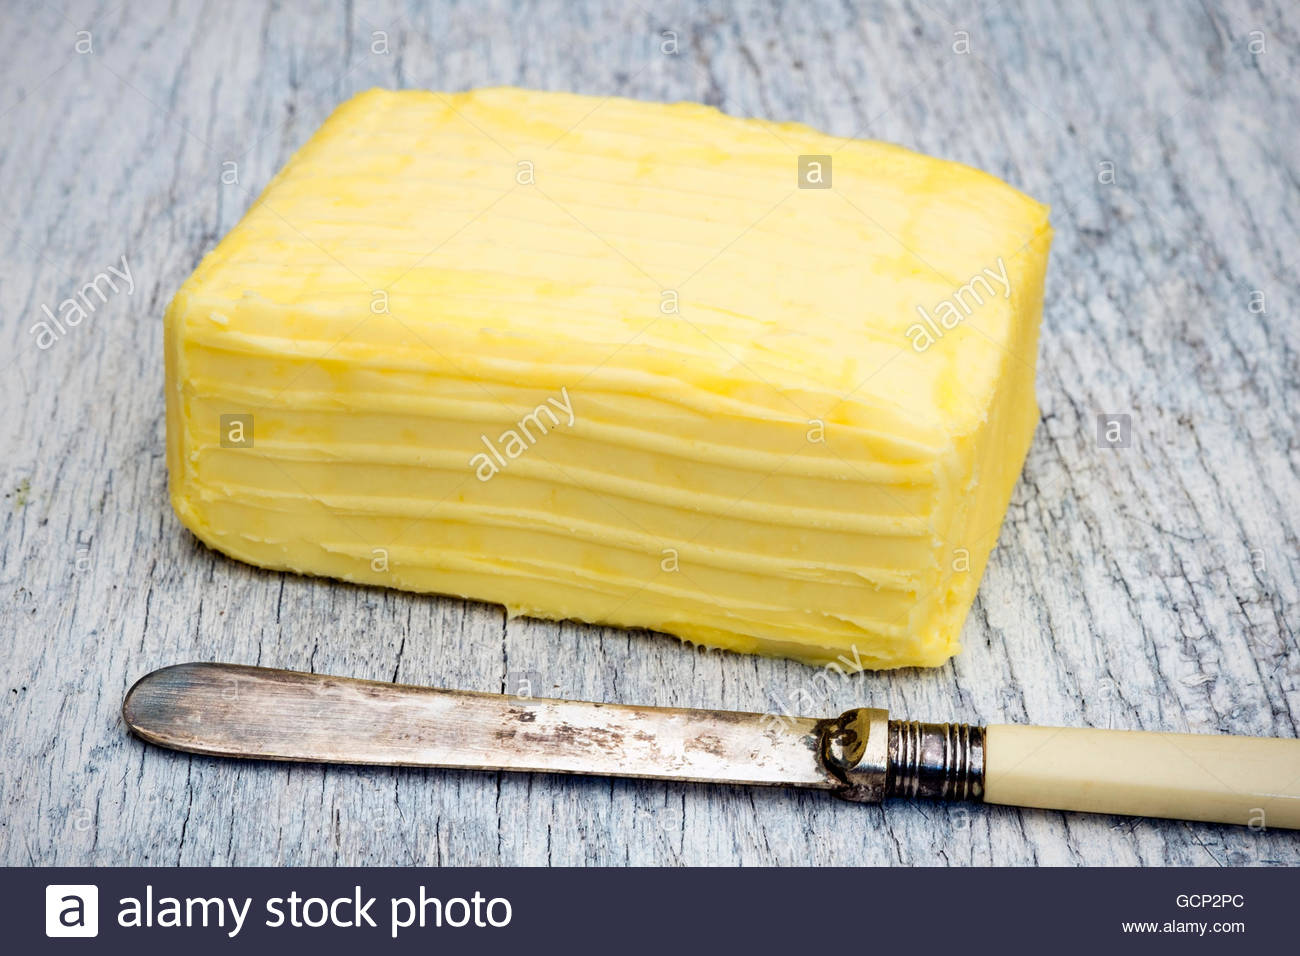 Block of butter & knife outdoors on a picnic table. - Stock Image